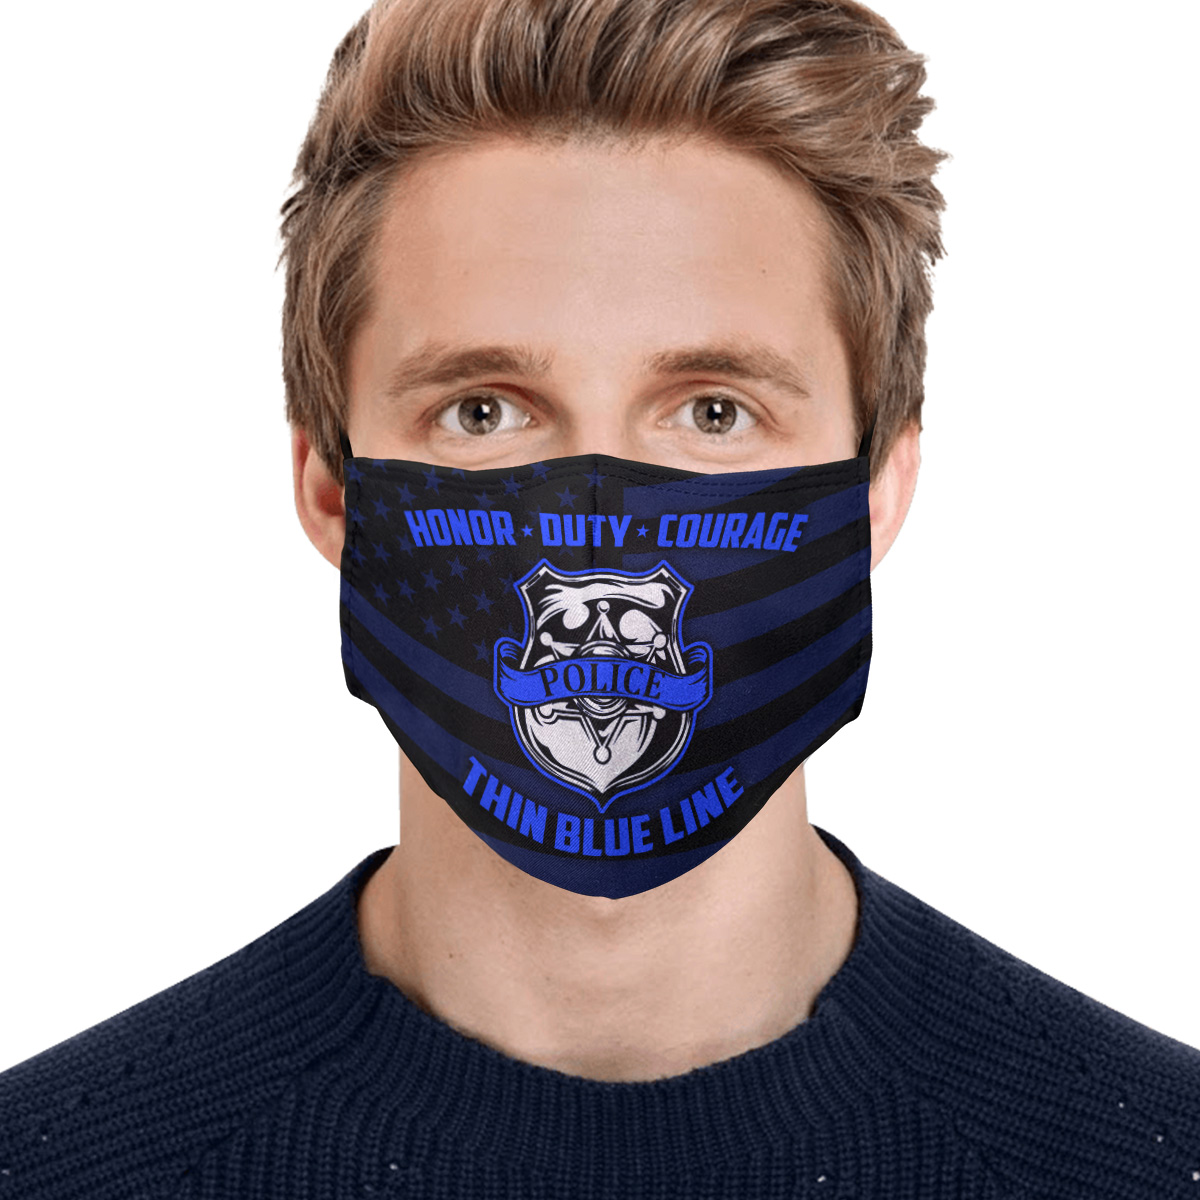 Honor duty courage police back thin blue line face mask 2